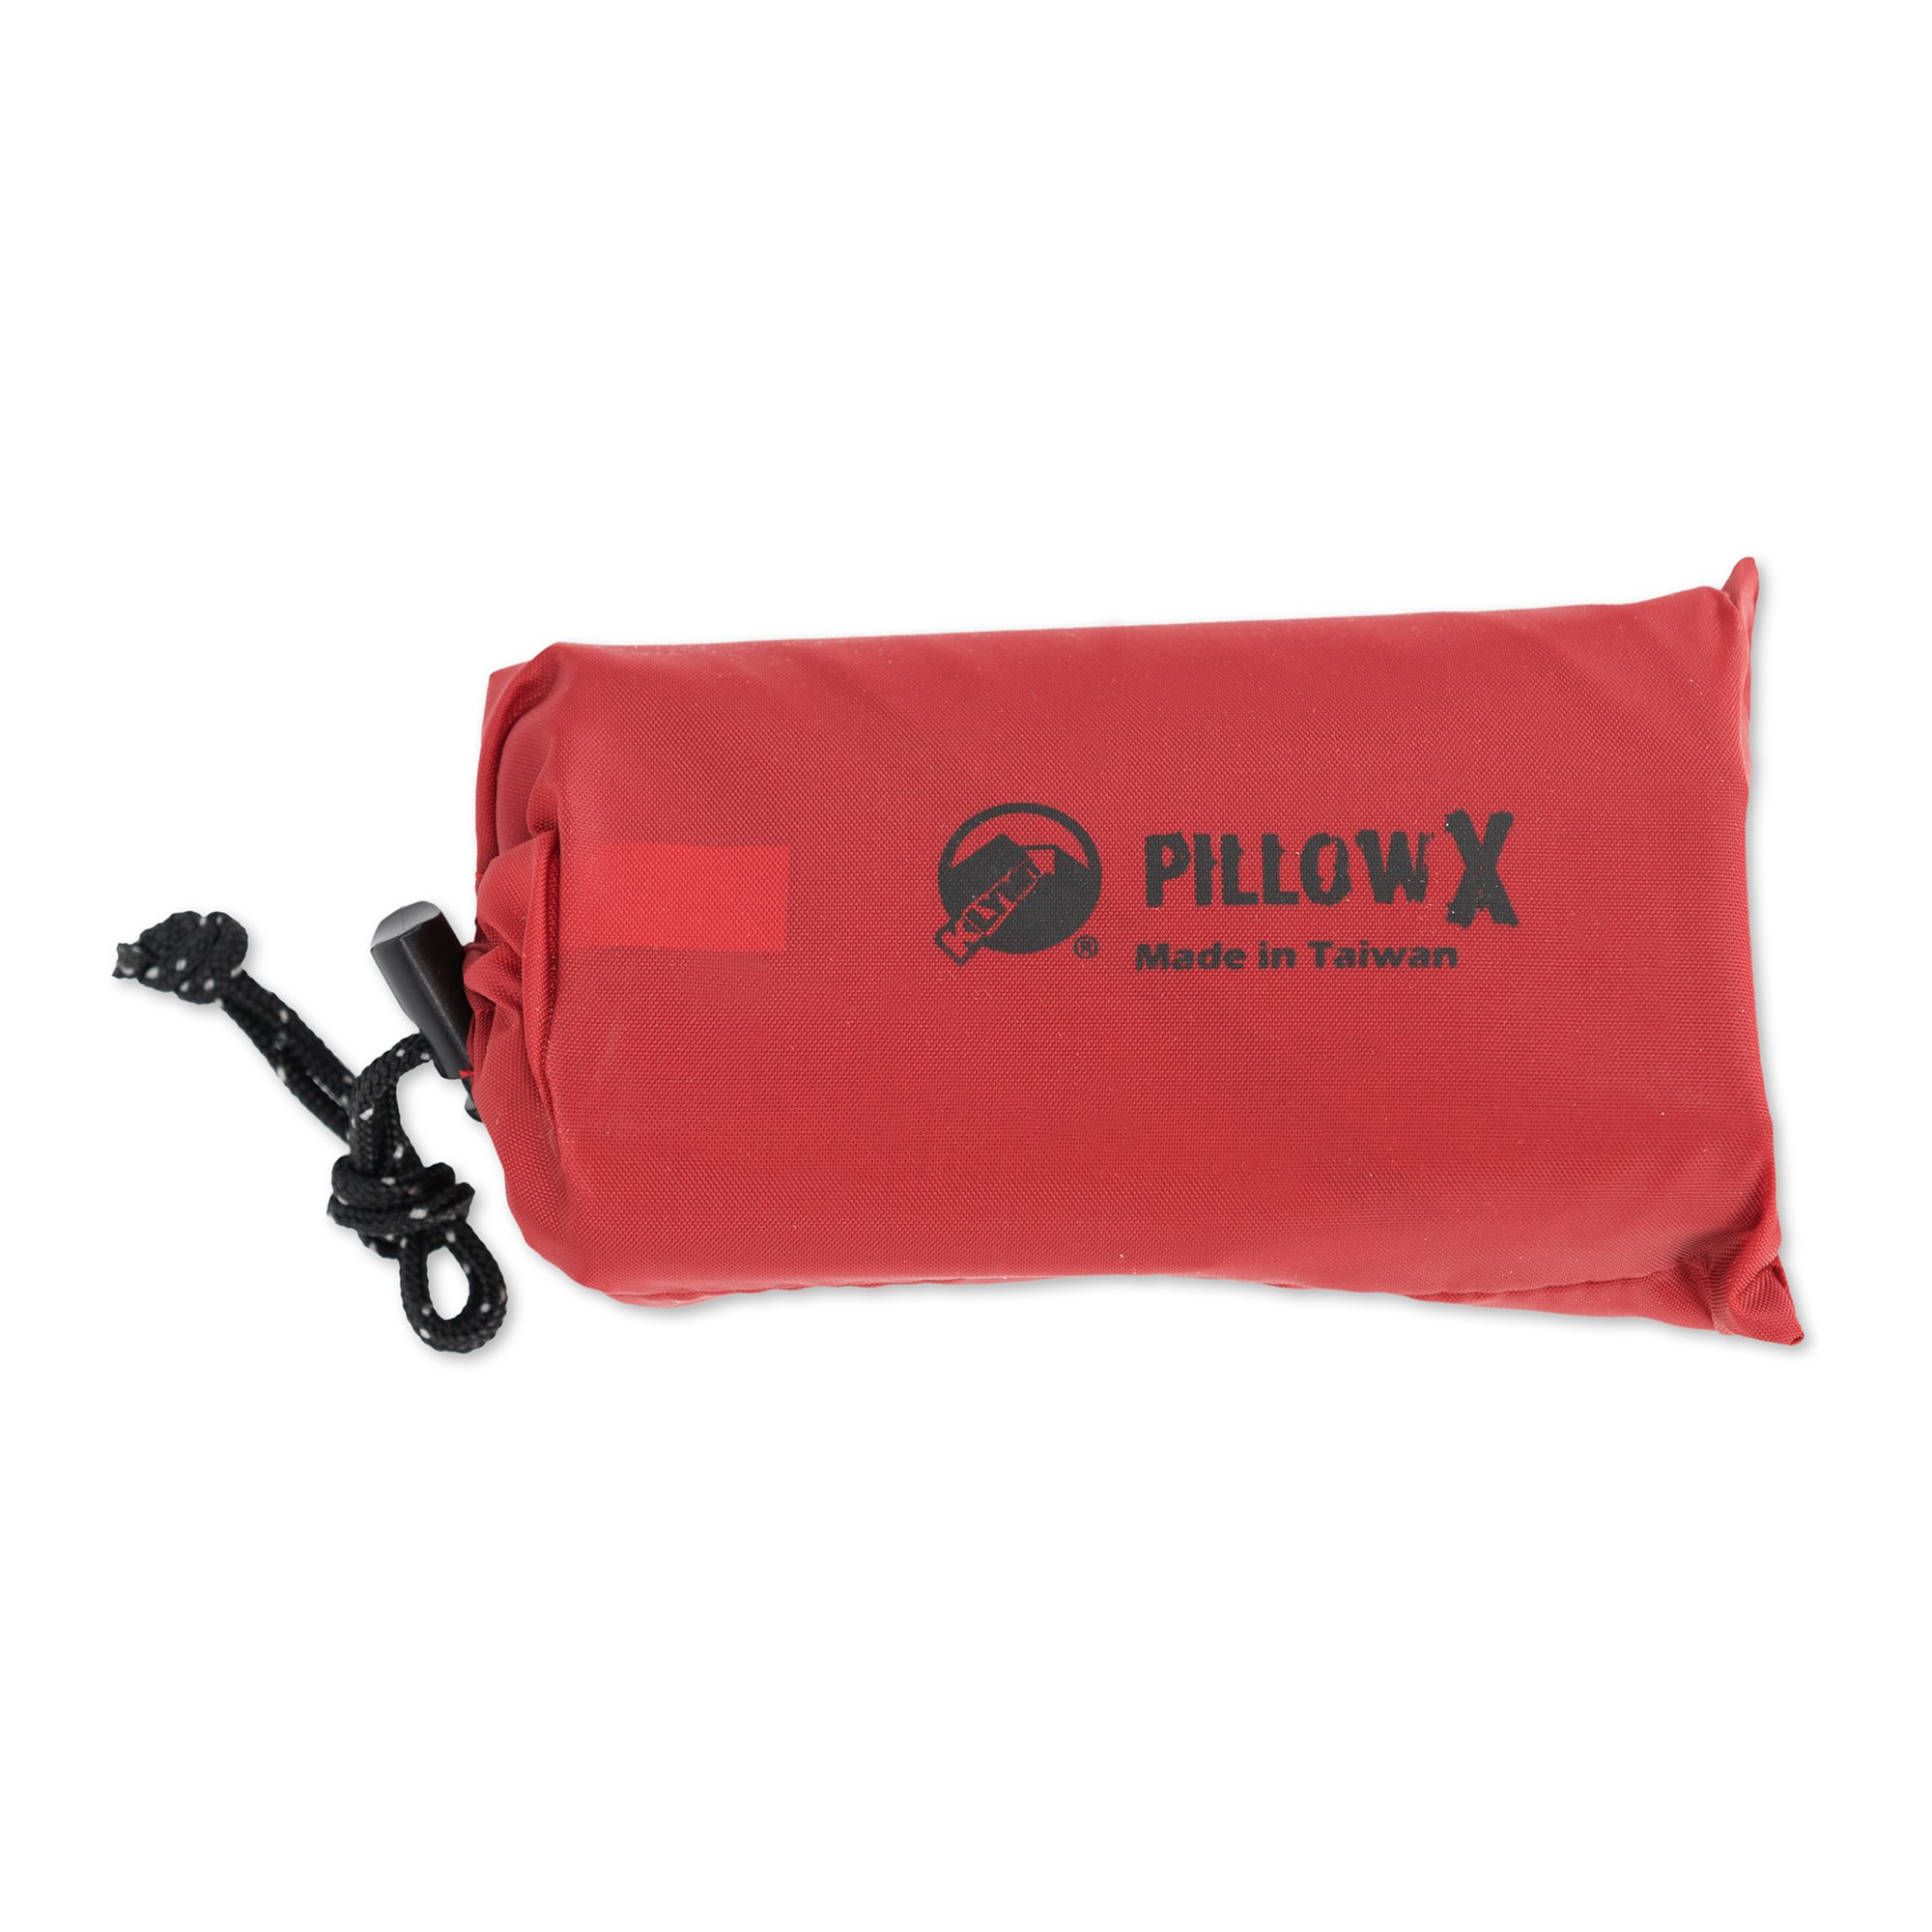 Klymit Pillow X Soft Ultralight Inflatable Travel Camping Pillow, Red (10 Pack) - image 5 de 6